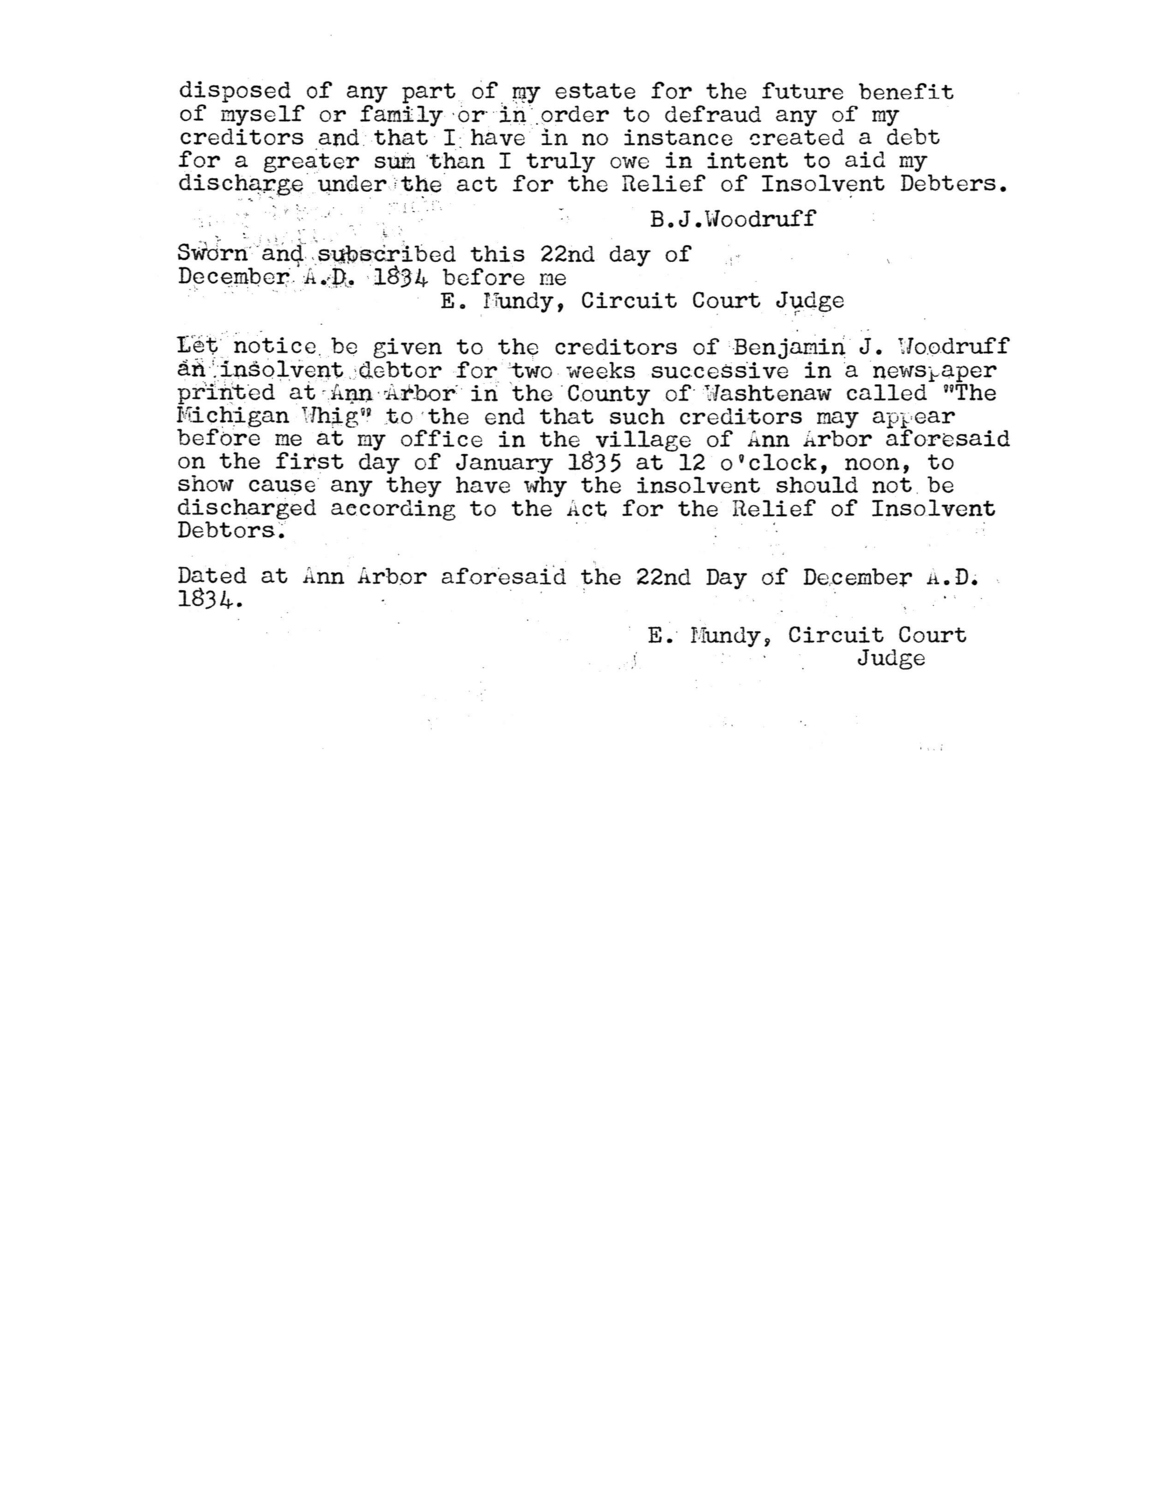 An Interesting Document from the Archives image